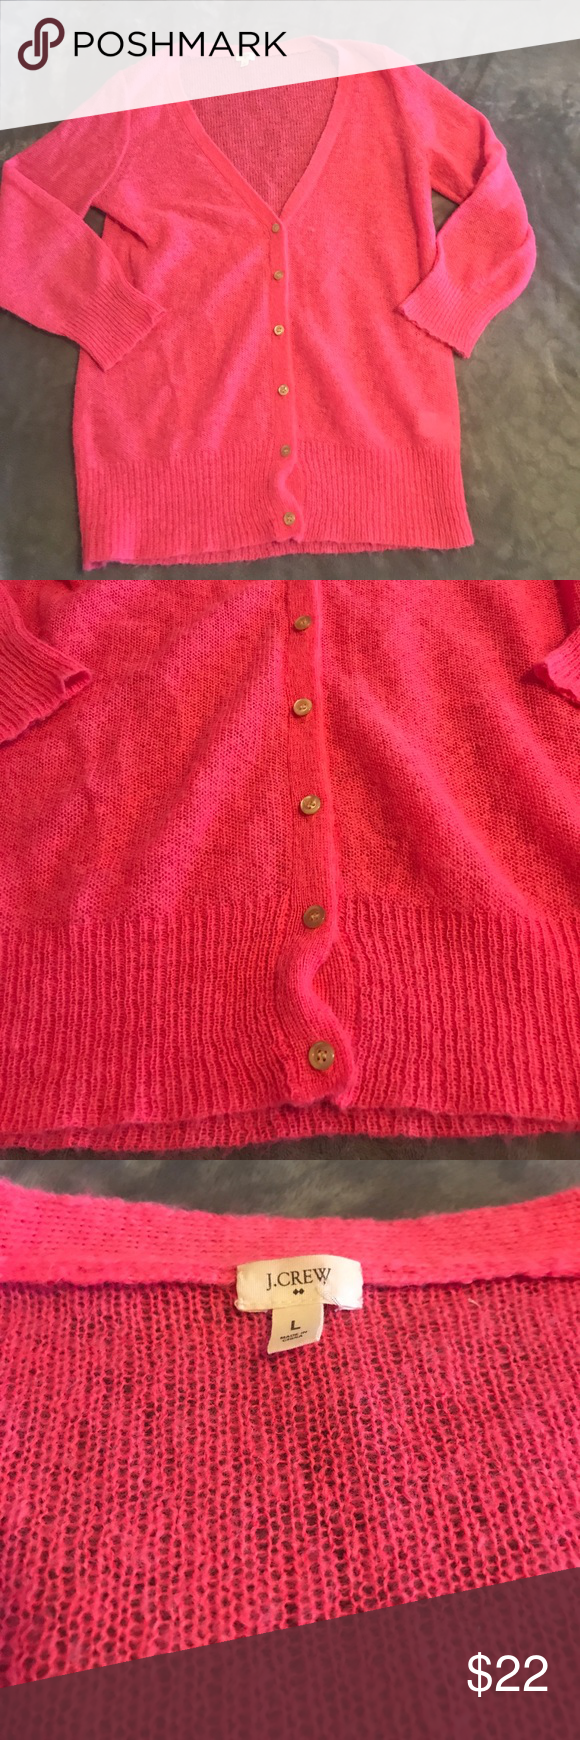 J. Crew pink button down sweater. Size Large J. Crew size Large ...